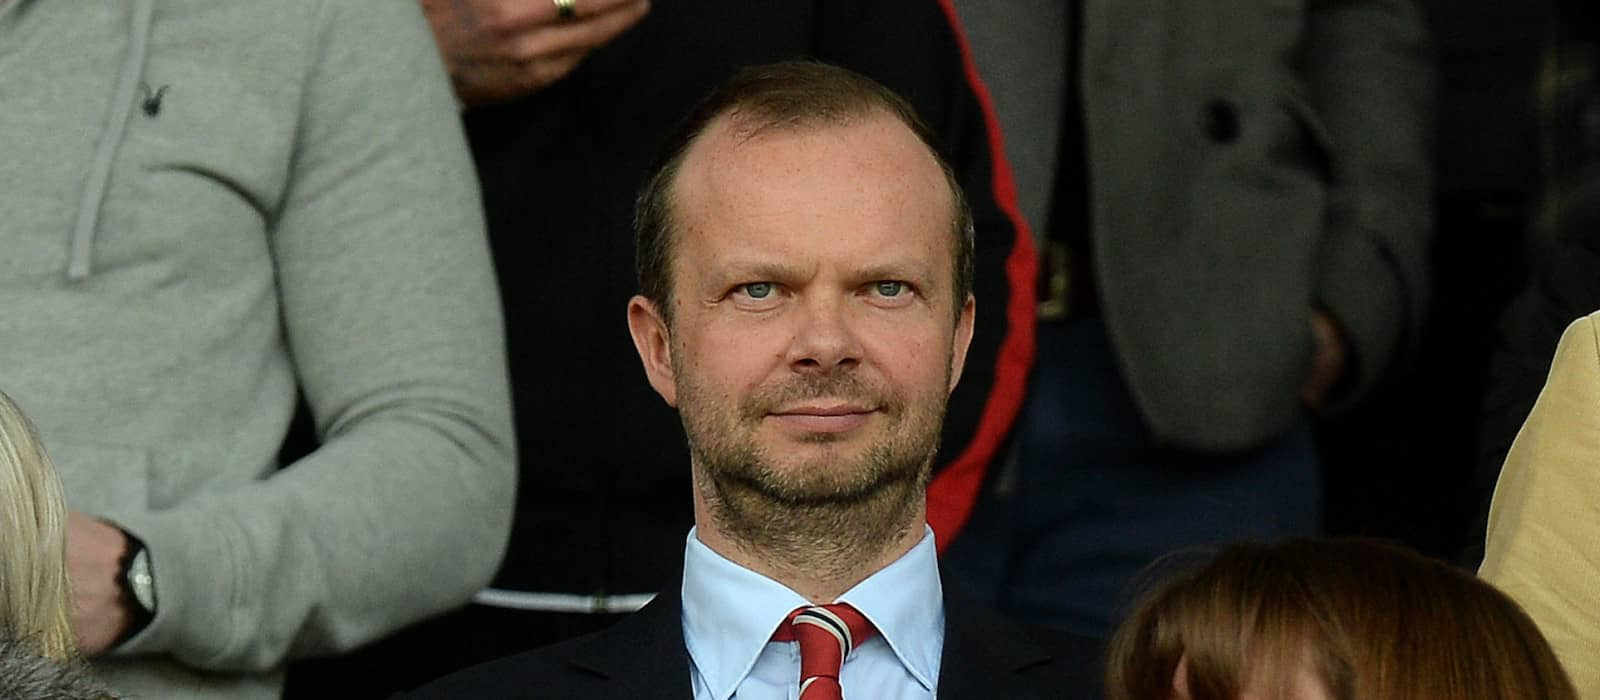 Saudi Arabia's royal family step up interest in Manchester United takeover: report